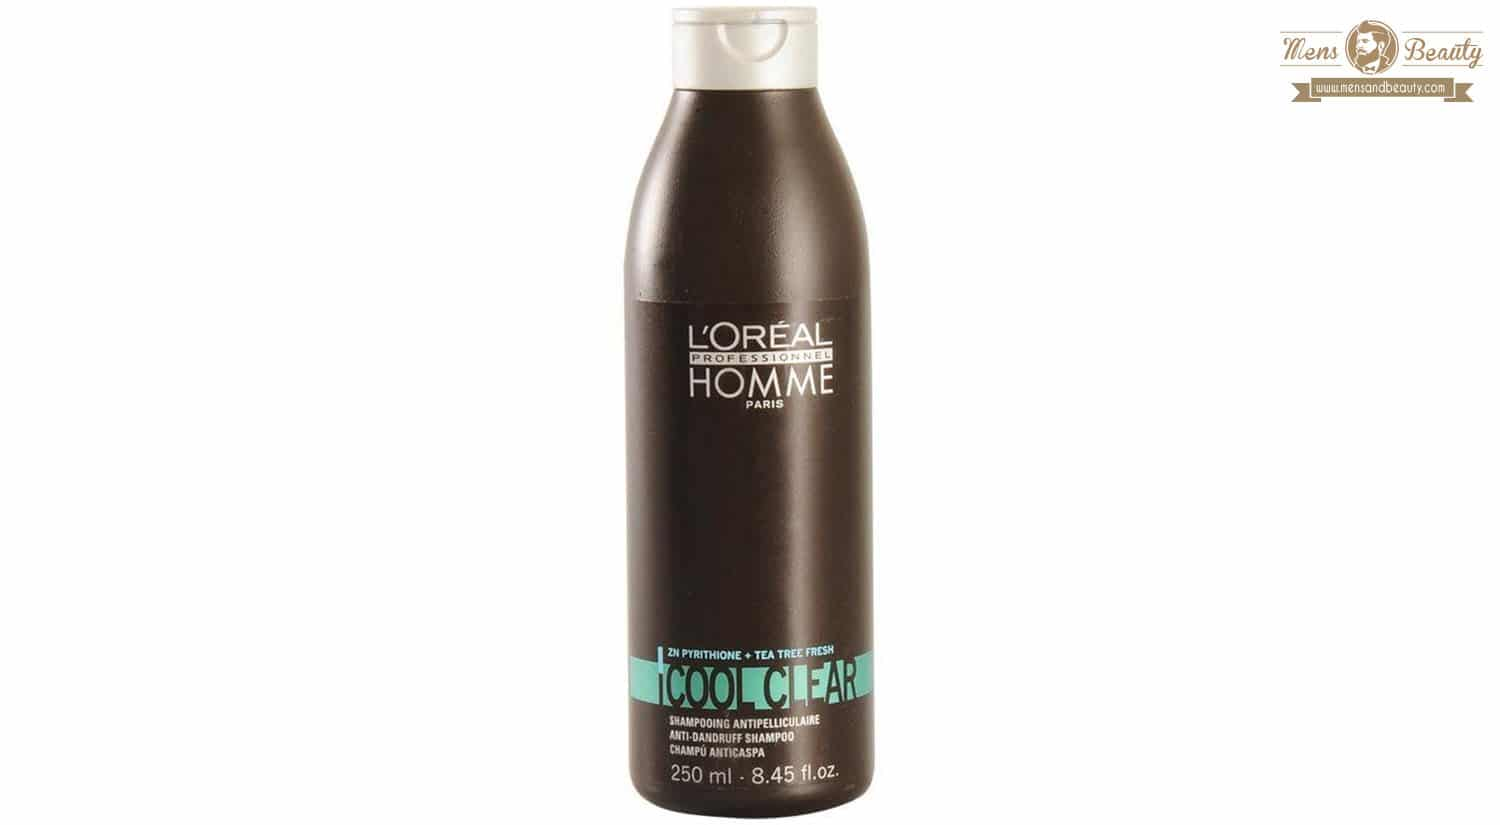 mejor champu anticaspa cool clear loreal men expert